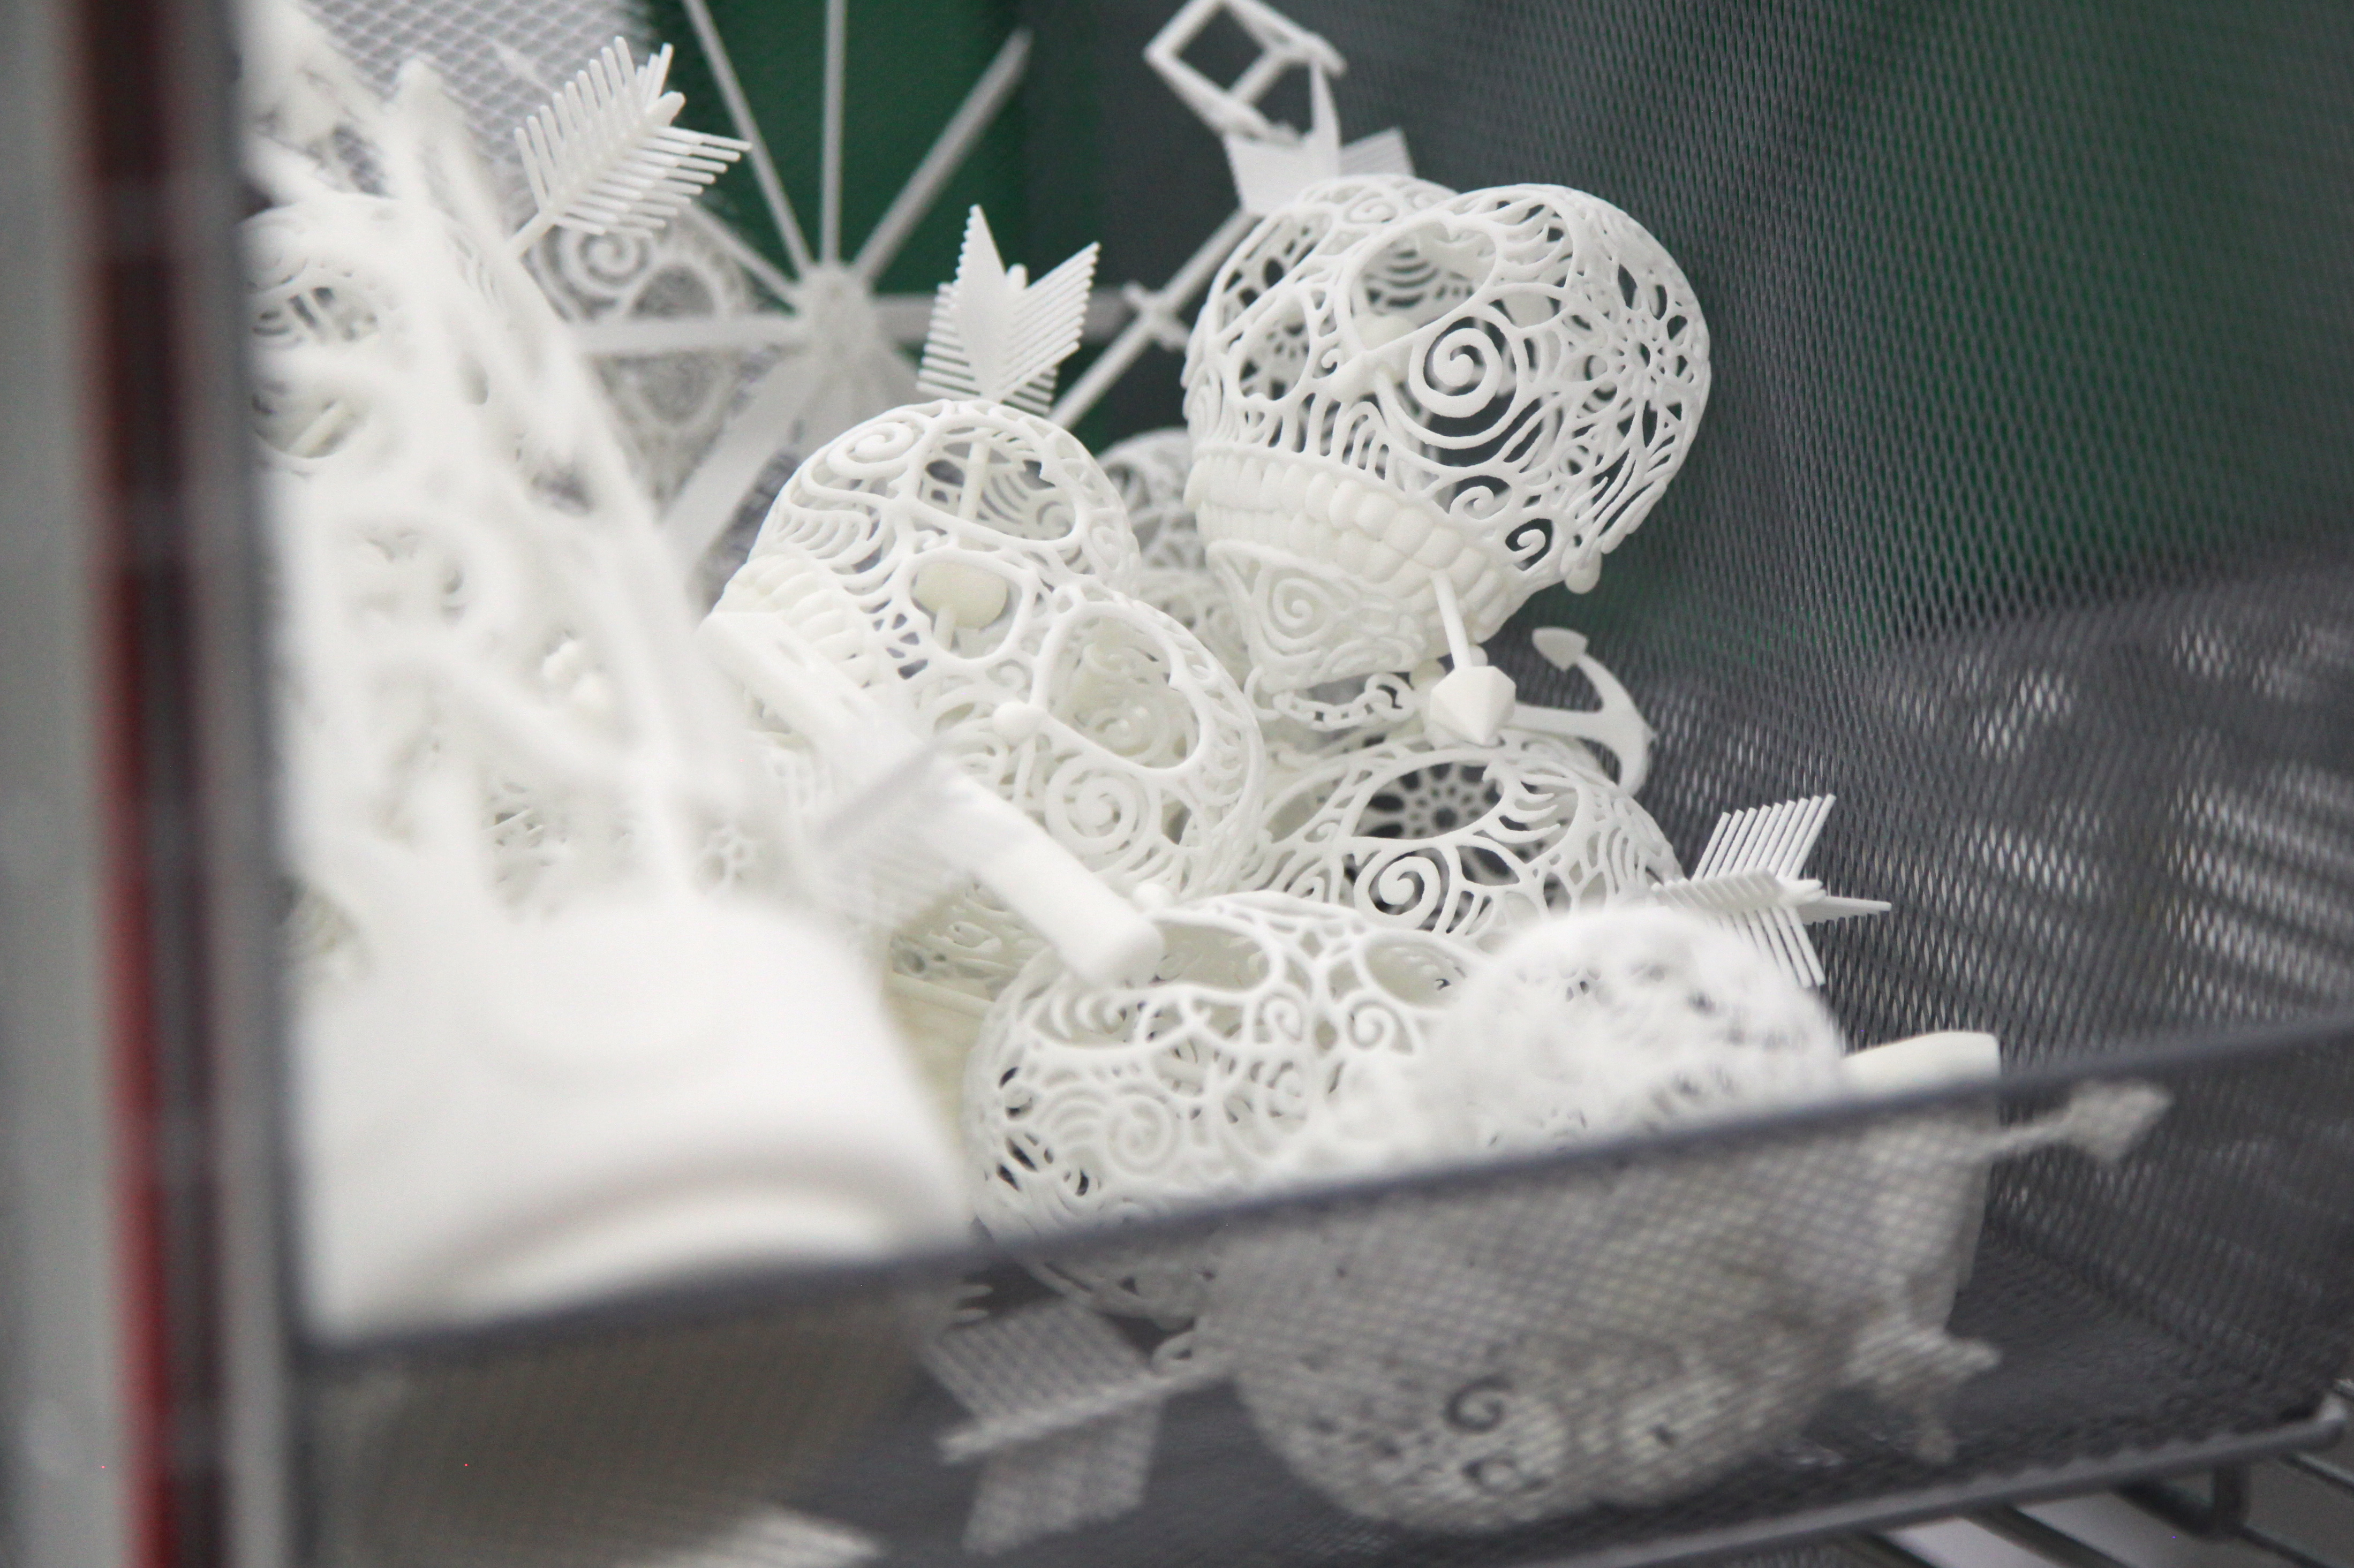 Shapeways factory 3D printed objects